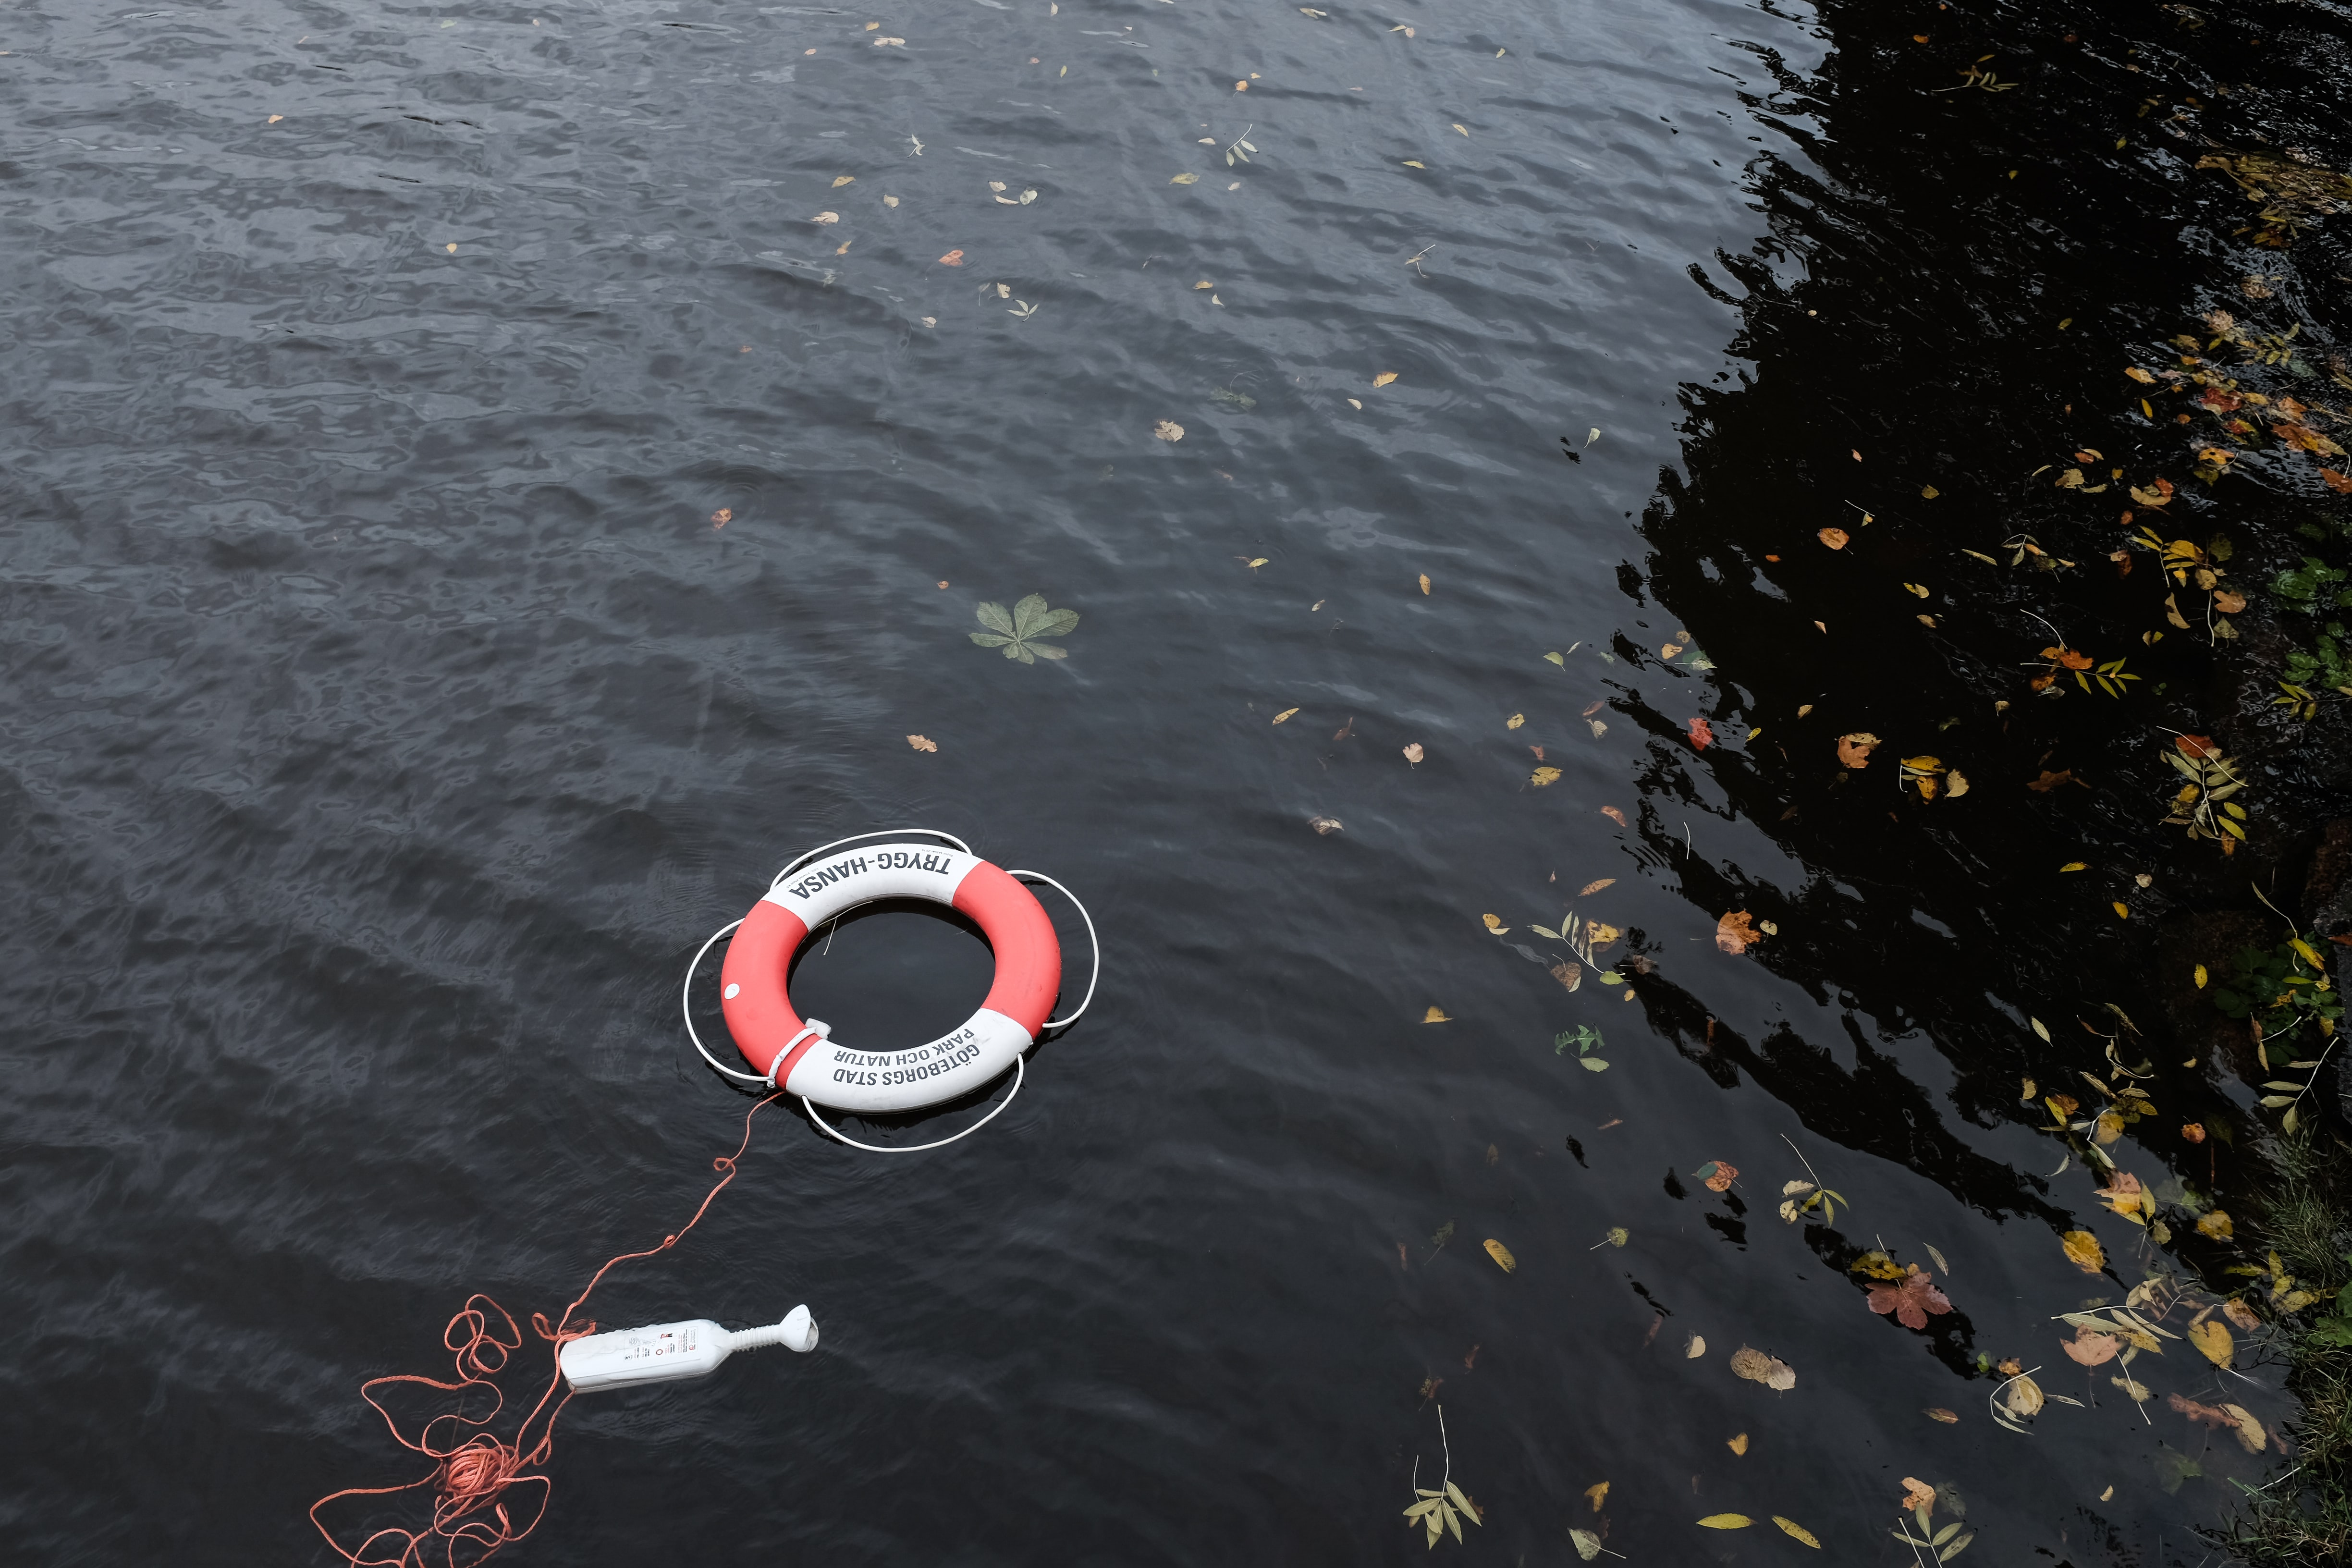 red and white bouy inflatable on water